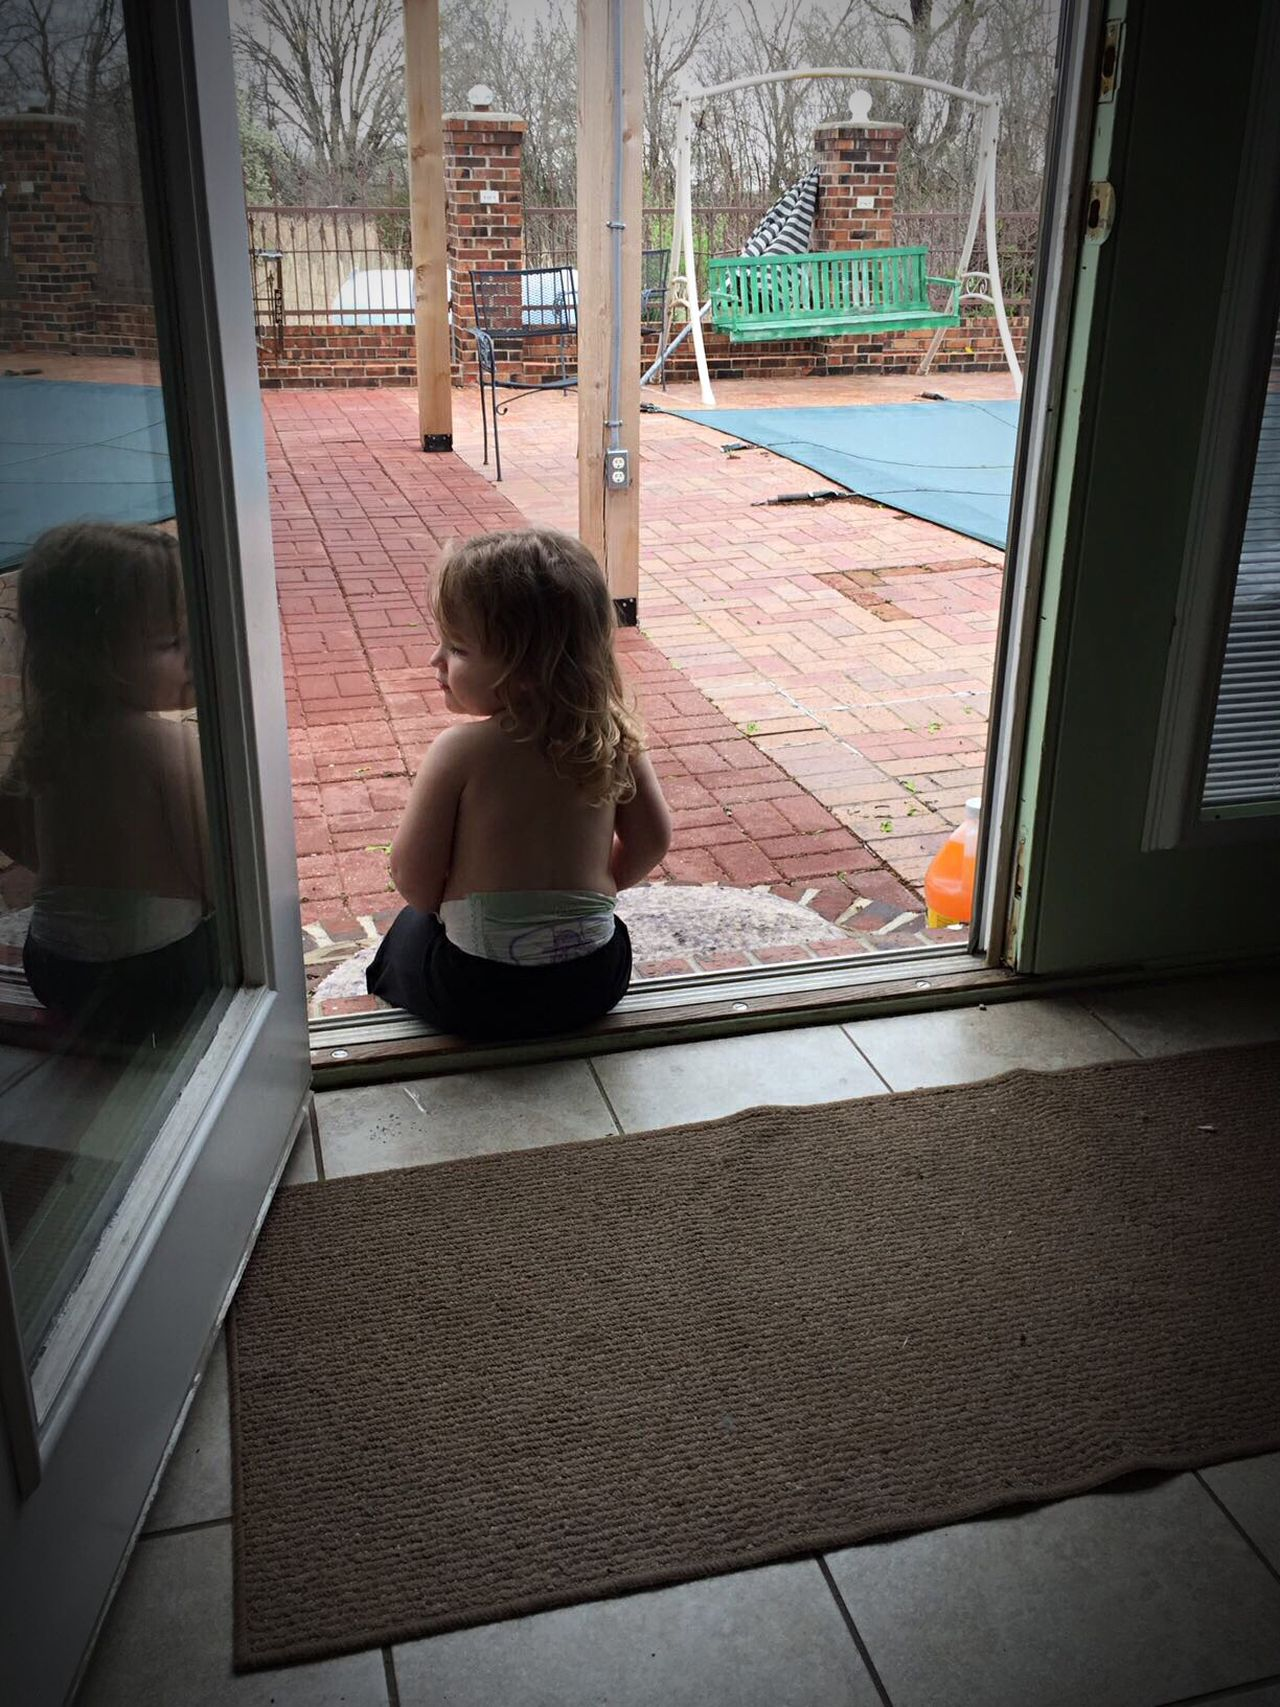 Child Indoors  Waiting On Dad Rear View One Person Work Day End Watching Maybe Grandpa Will Come Home First I'm Staying Inside Good Boy Day Patience Just Looking Outside I Won't Leave This Step! Promises